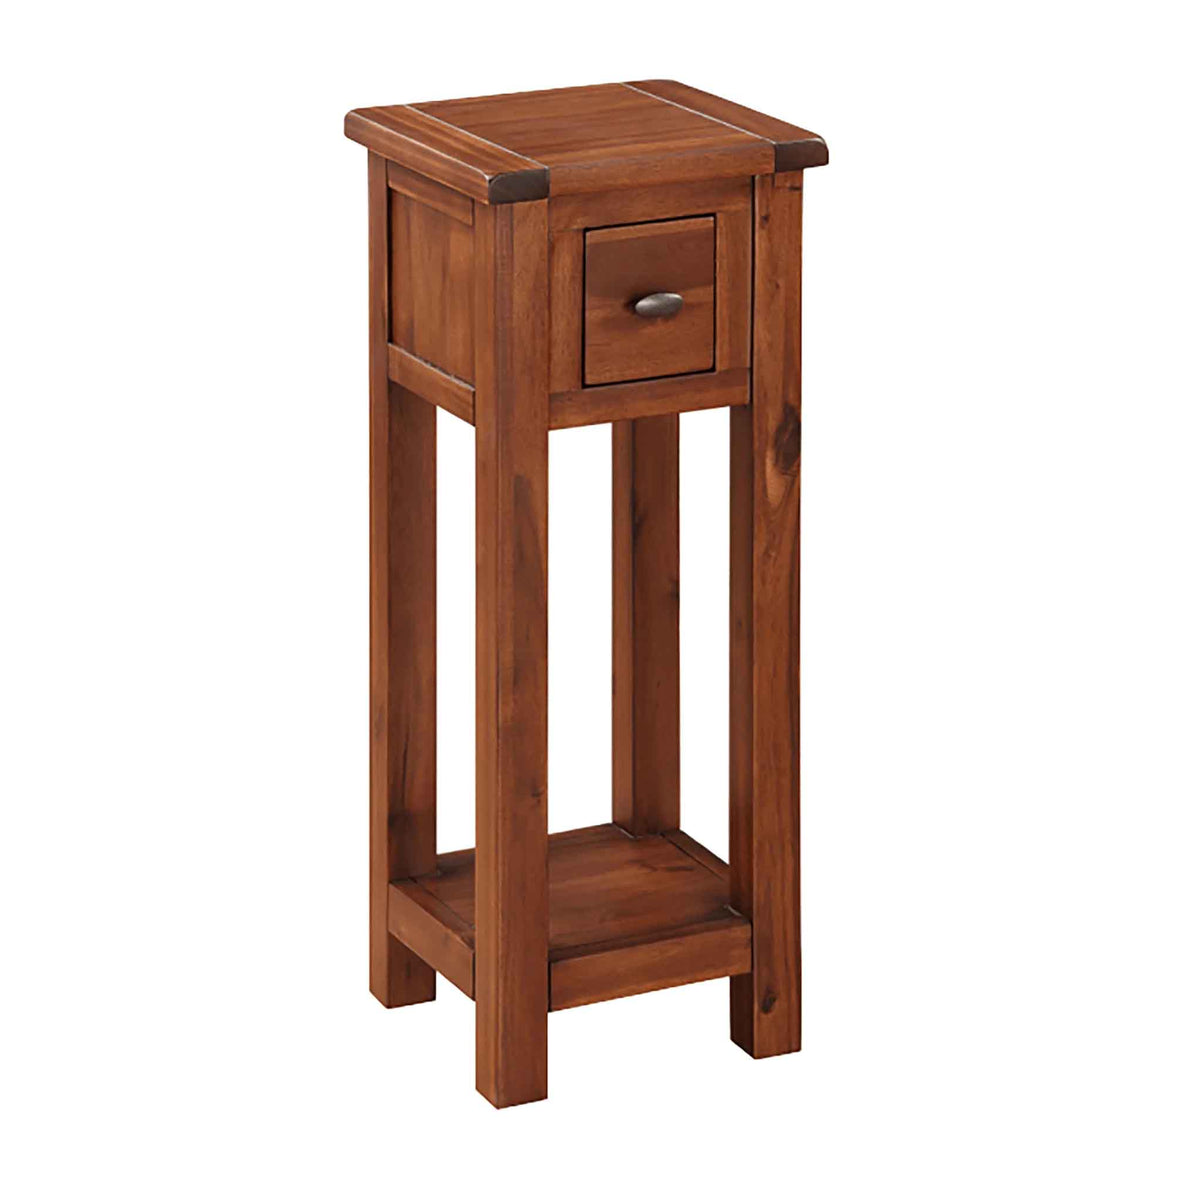 The Prussia Acacia Dark Wood Telephone Table with Small Drawer from Roseland Furniture